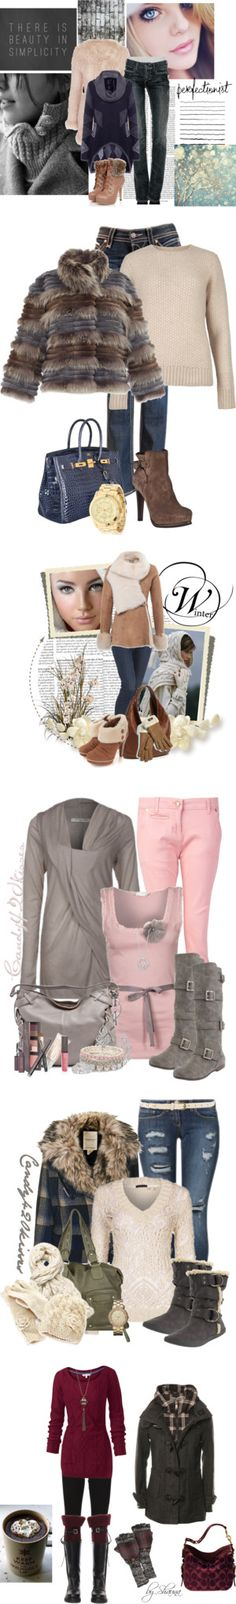 """Stuff I want to wear!"" by leelee107 ❤ liked on Polyvore"